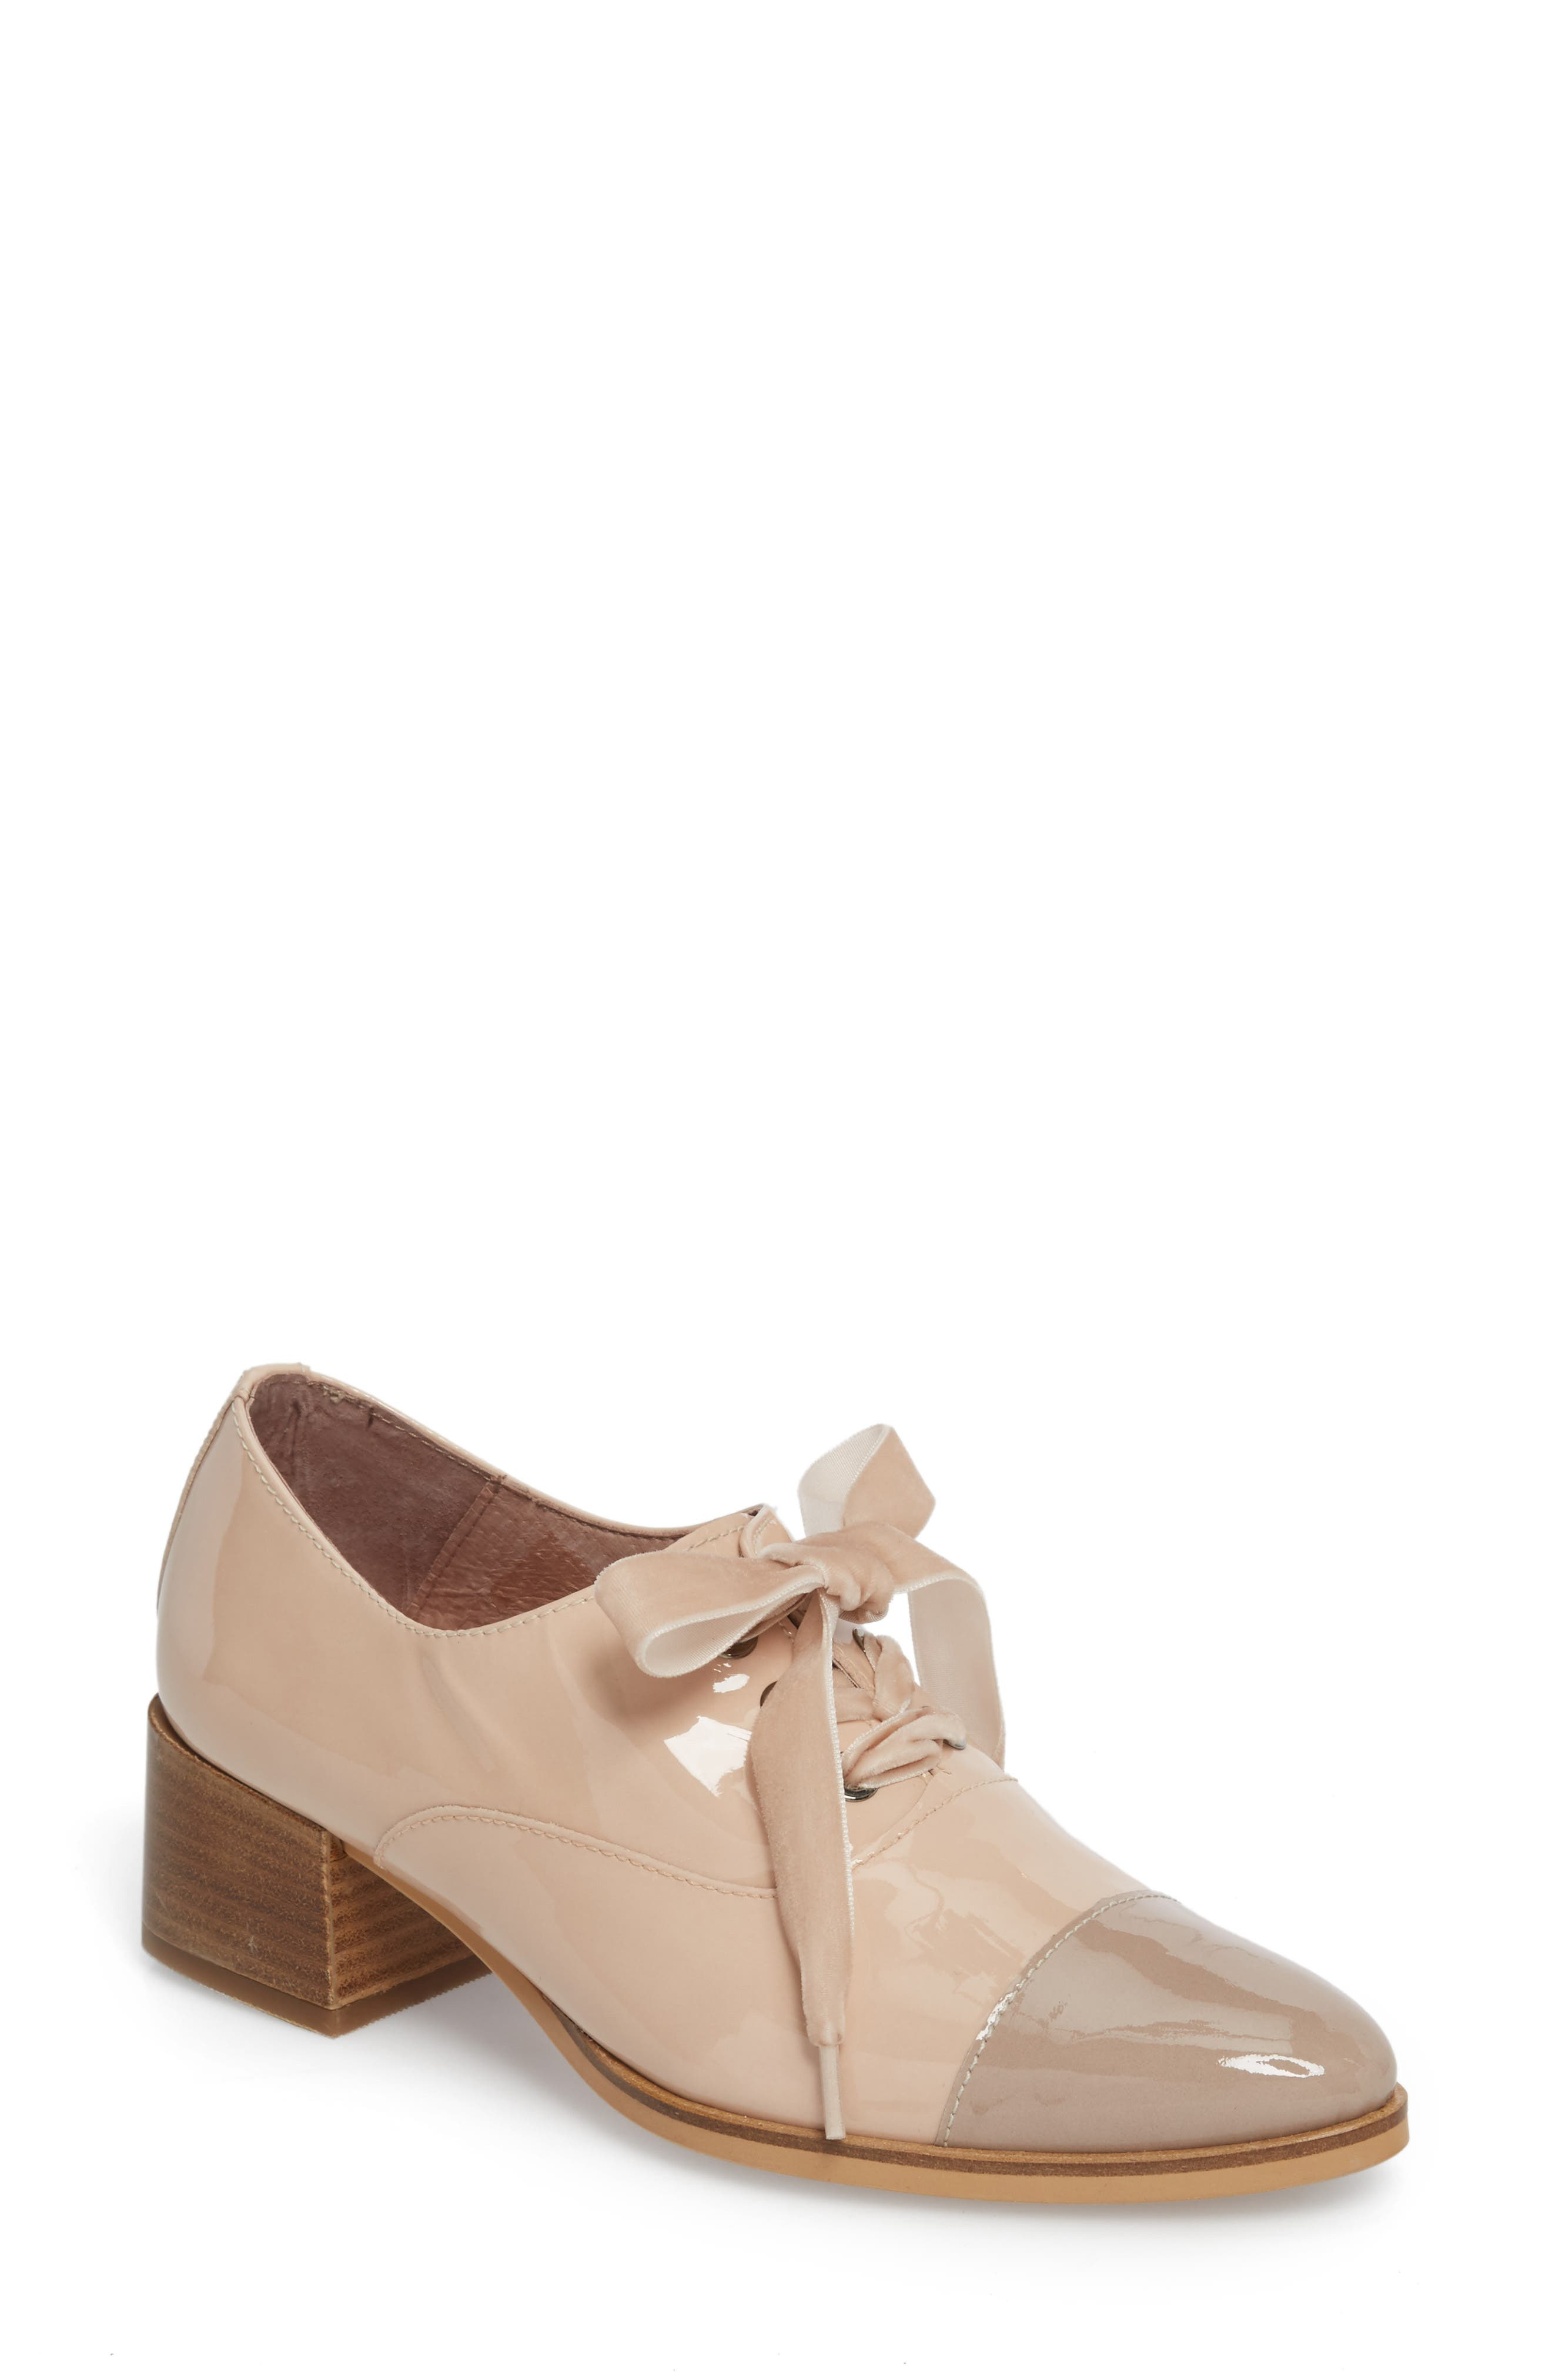 Lace-Up Oxford Pump,                             Main thumbnail 1, color,                             TAUPE/ PALO PATENT LEATHER